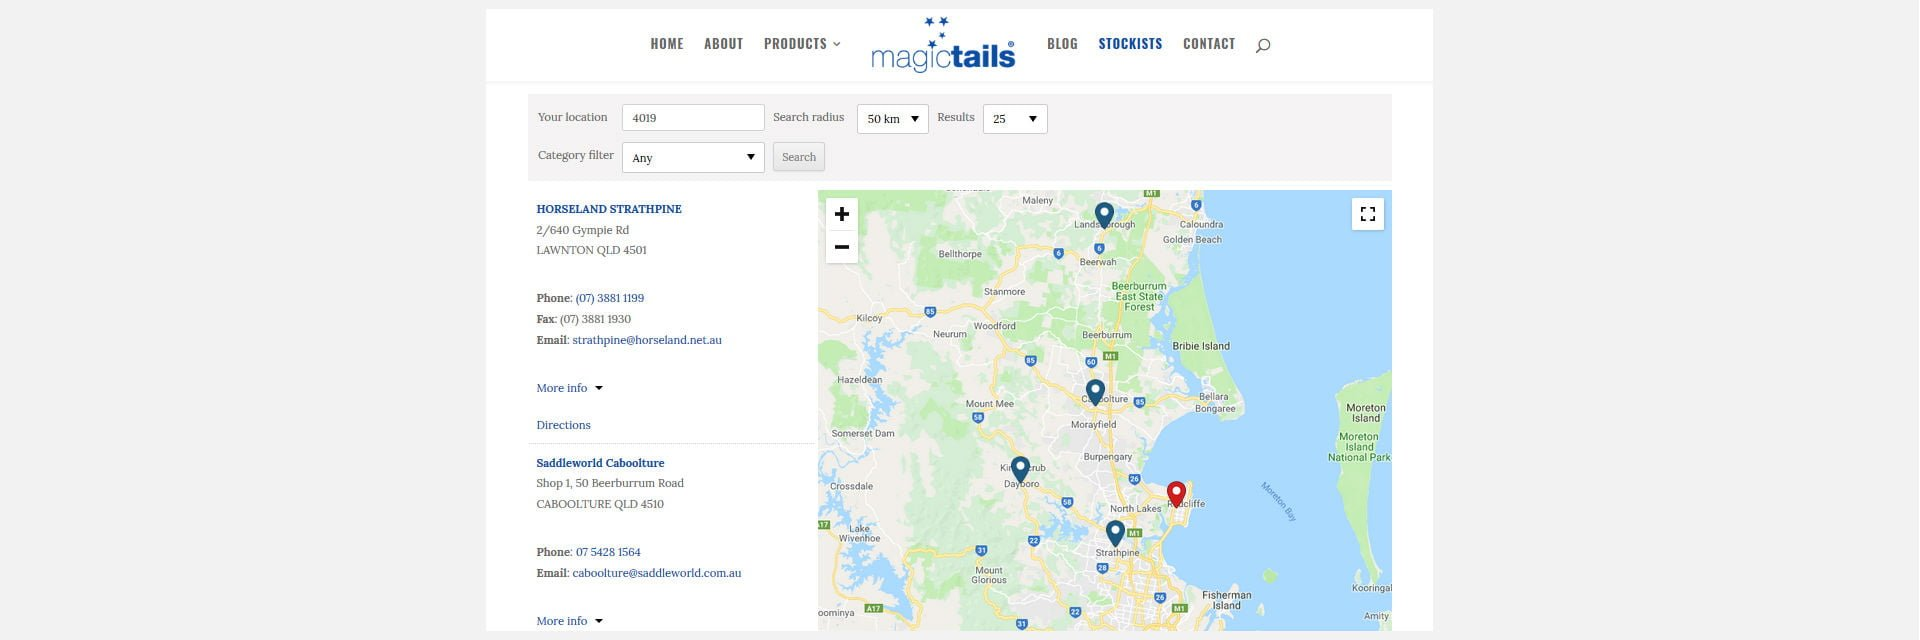 Magictails Stockists Locator around Australia